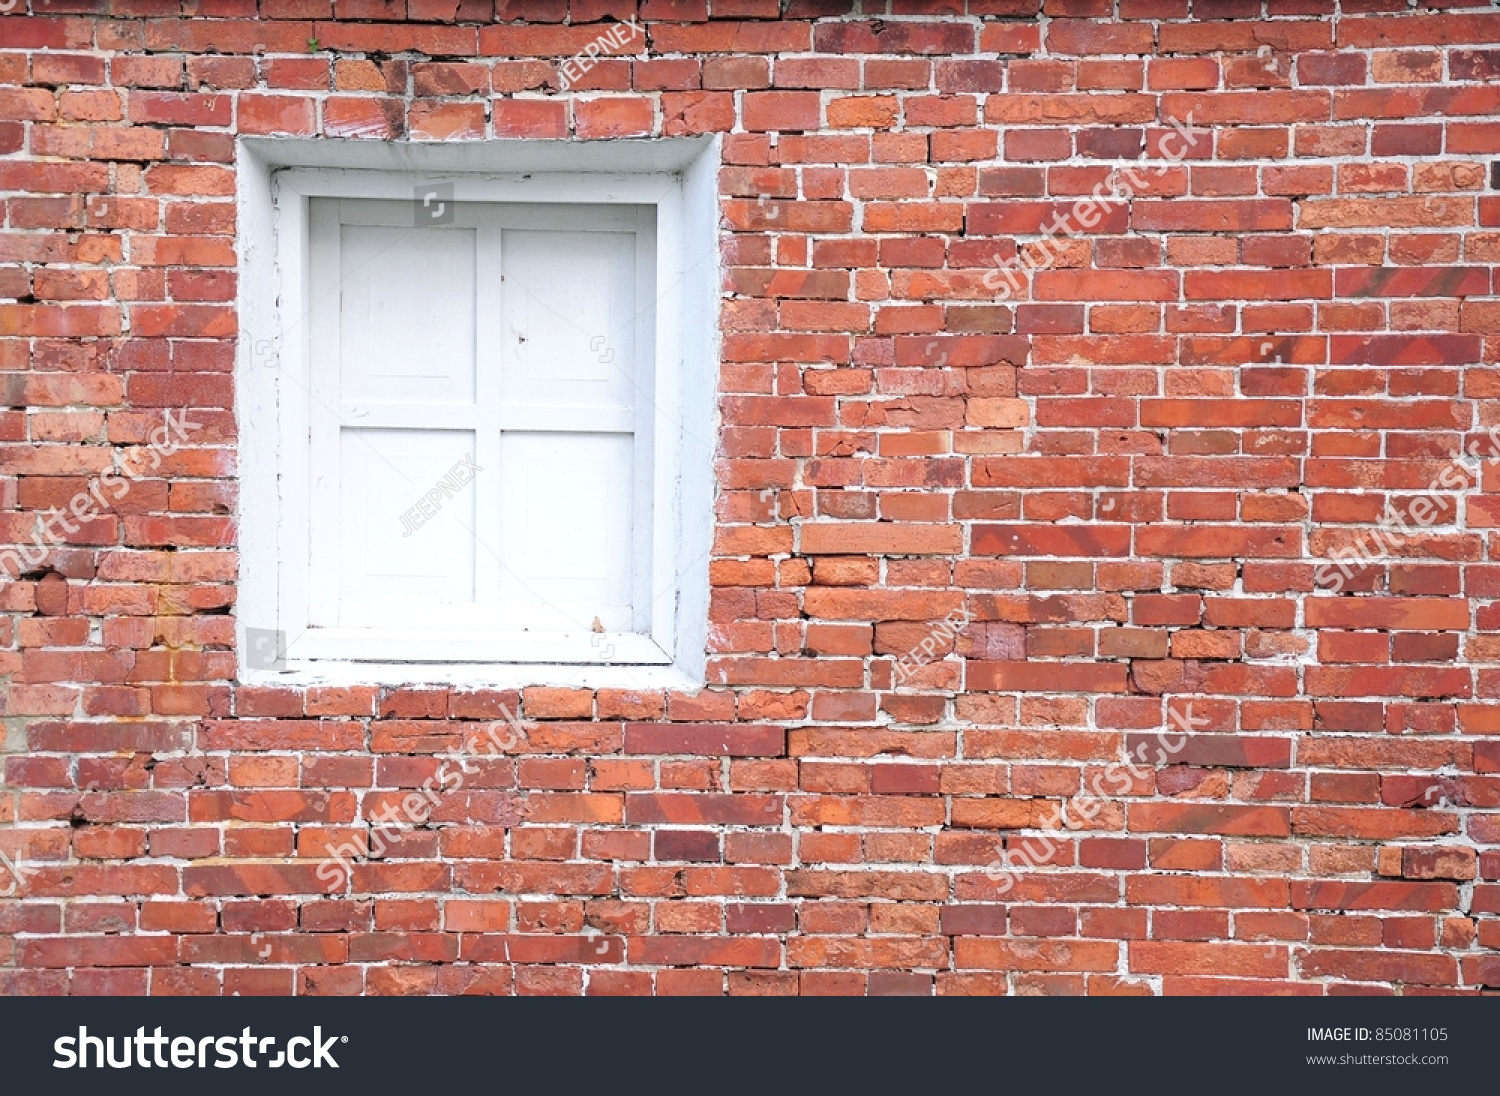 Old Brick Wall With White Window Stock Photo 85081105